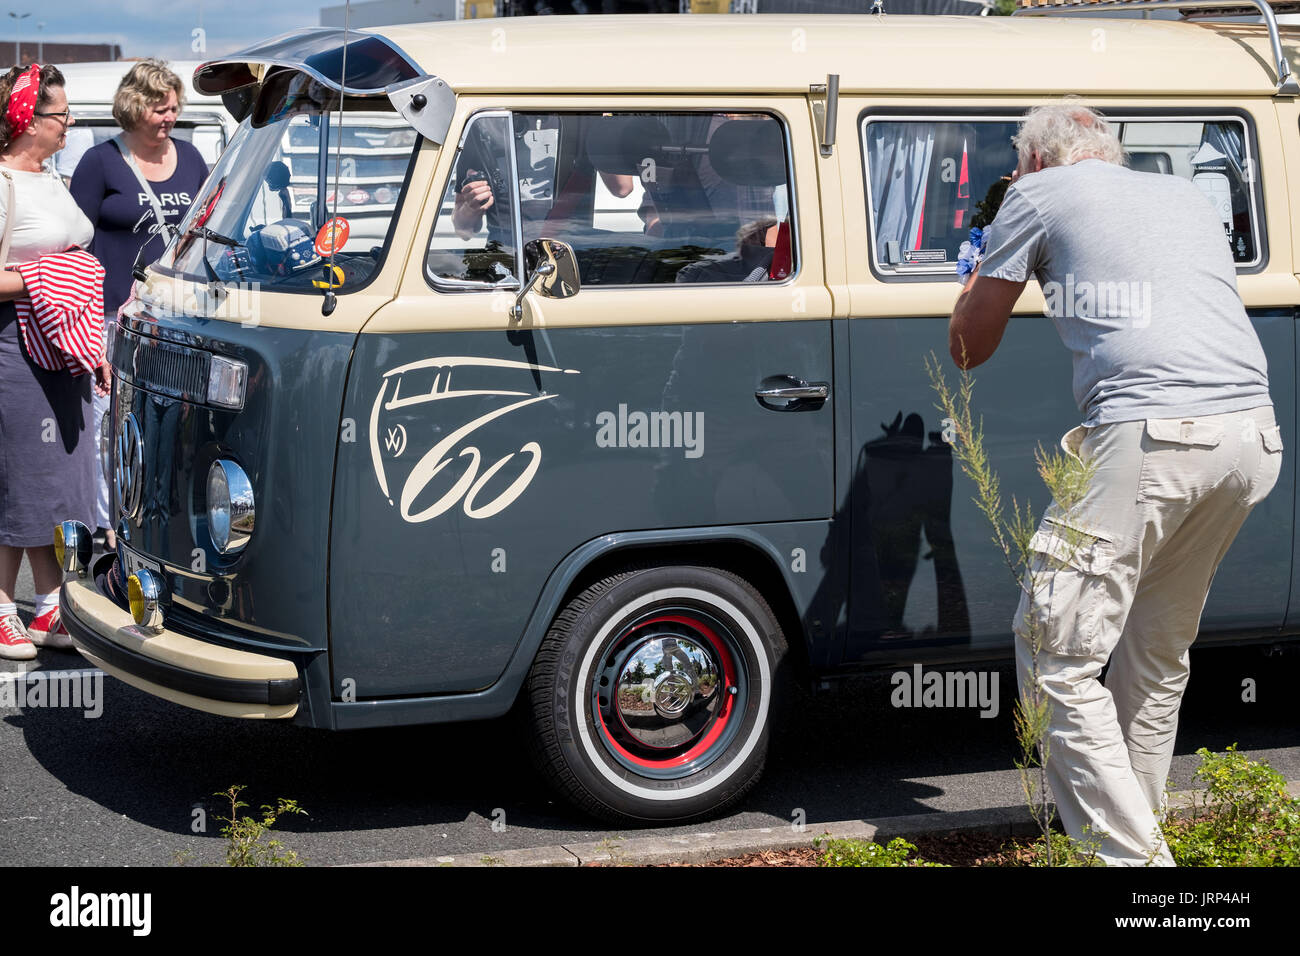 Stocken, Germany. 06th Aug, 2017. An old VW Kombi pictured in the grounds of the Volkswagen Commercial Vehicles Plant during the Kombi Meet on the occasion of the 70th anniversary of the Volkswagen Transporter in Stocken, Germany, 06 August 2017. Photo: Peter Steffen/dpa/Alamy Live News - Stock Image